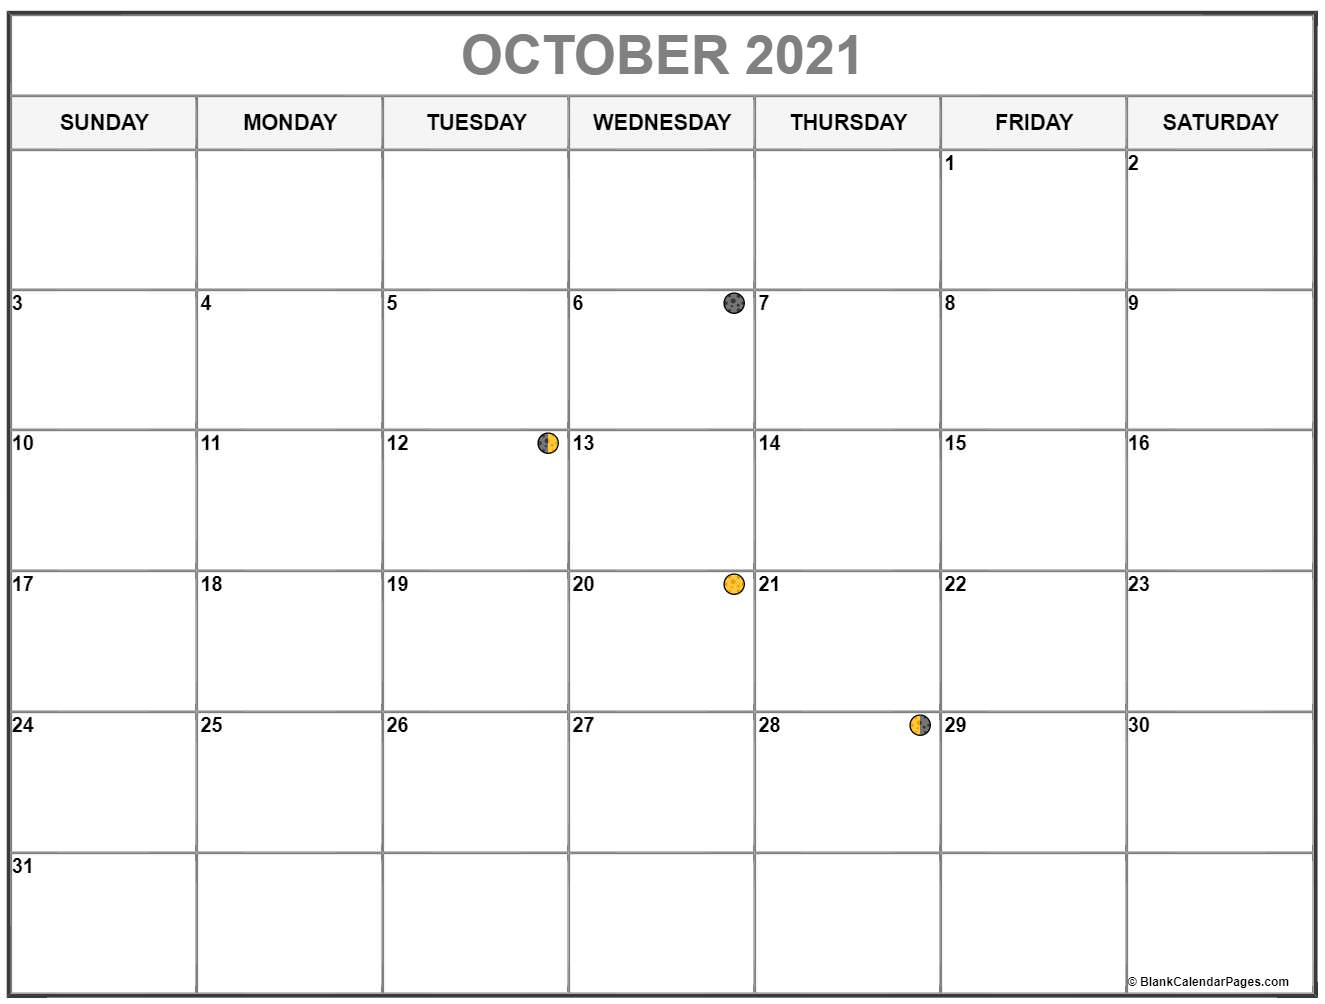 October 2021 Lunar calendar. moon phase calendar with USA holidays